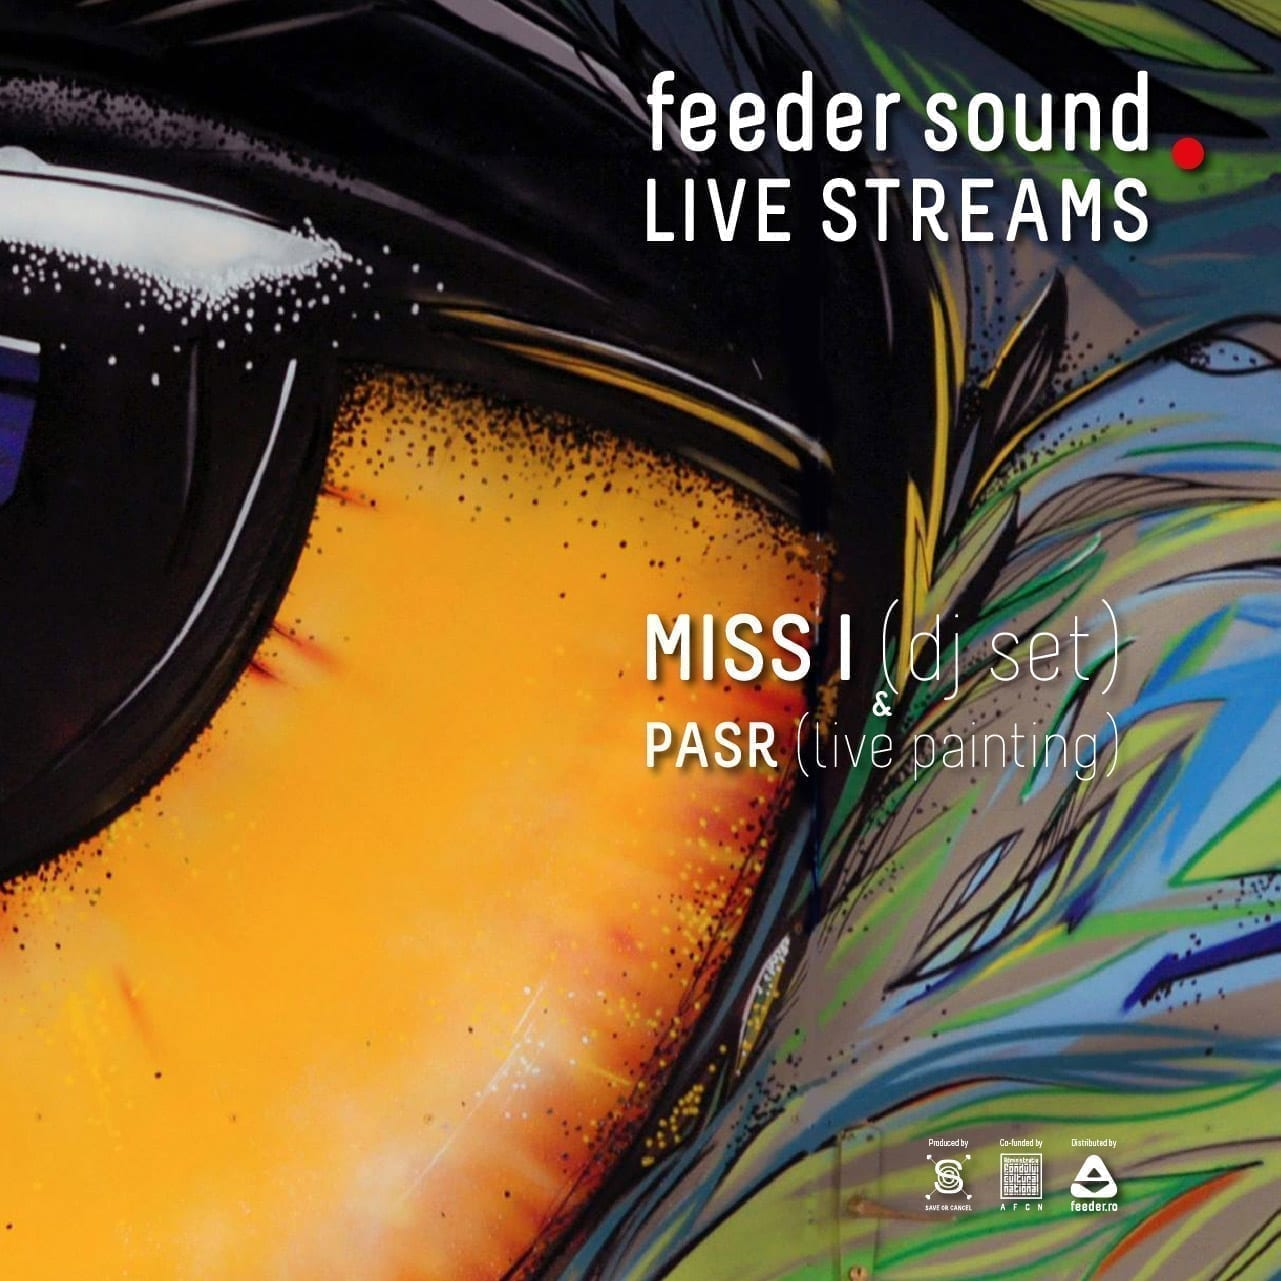 feeder sound LIVE MISS I (dj set) & PASR (live painting)